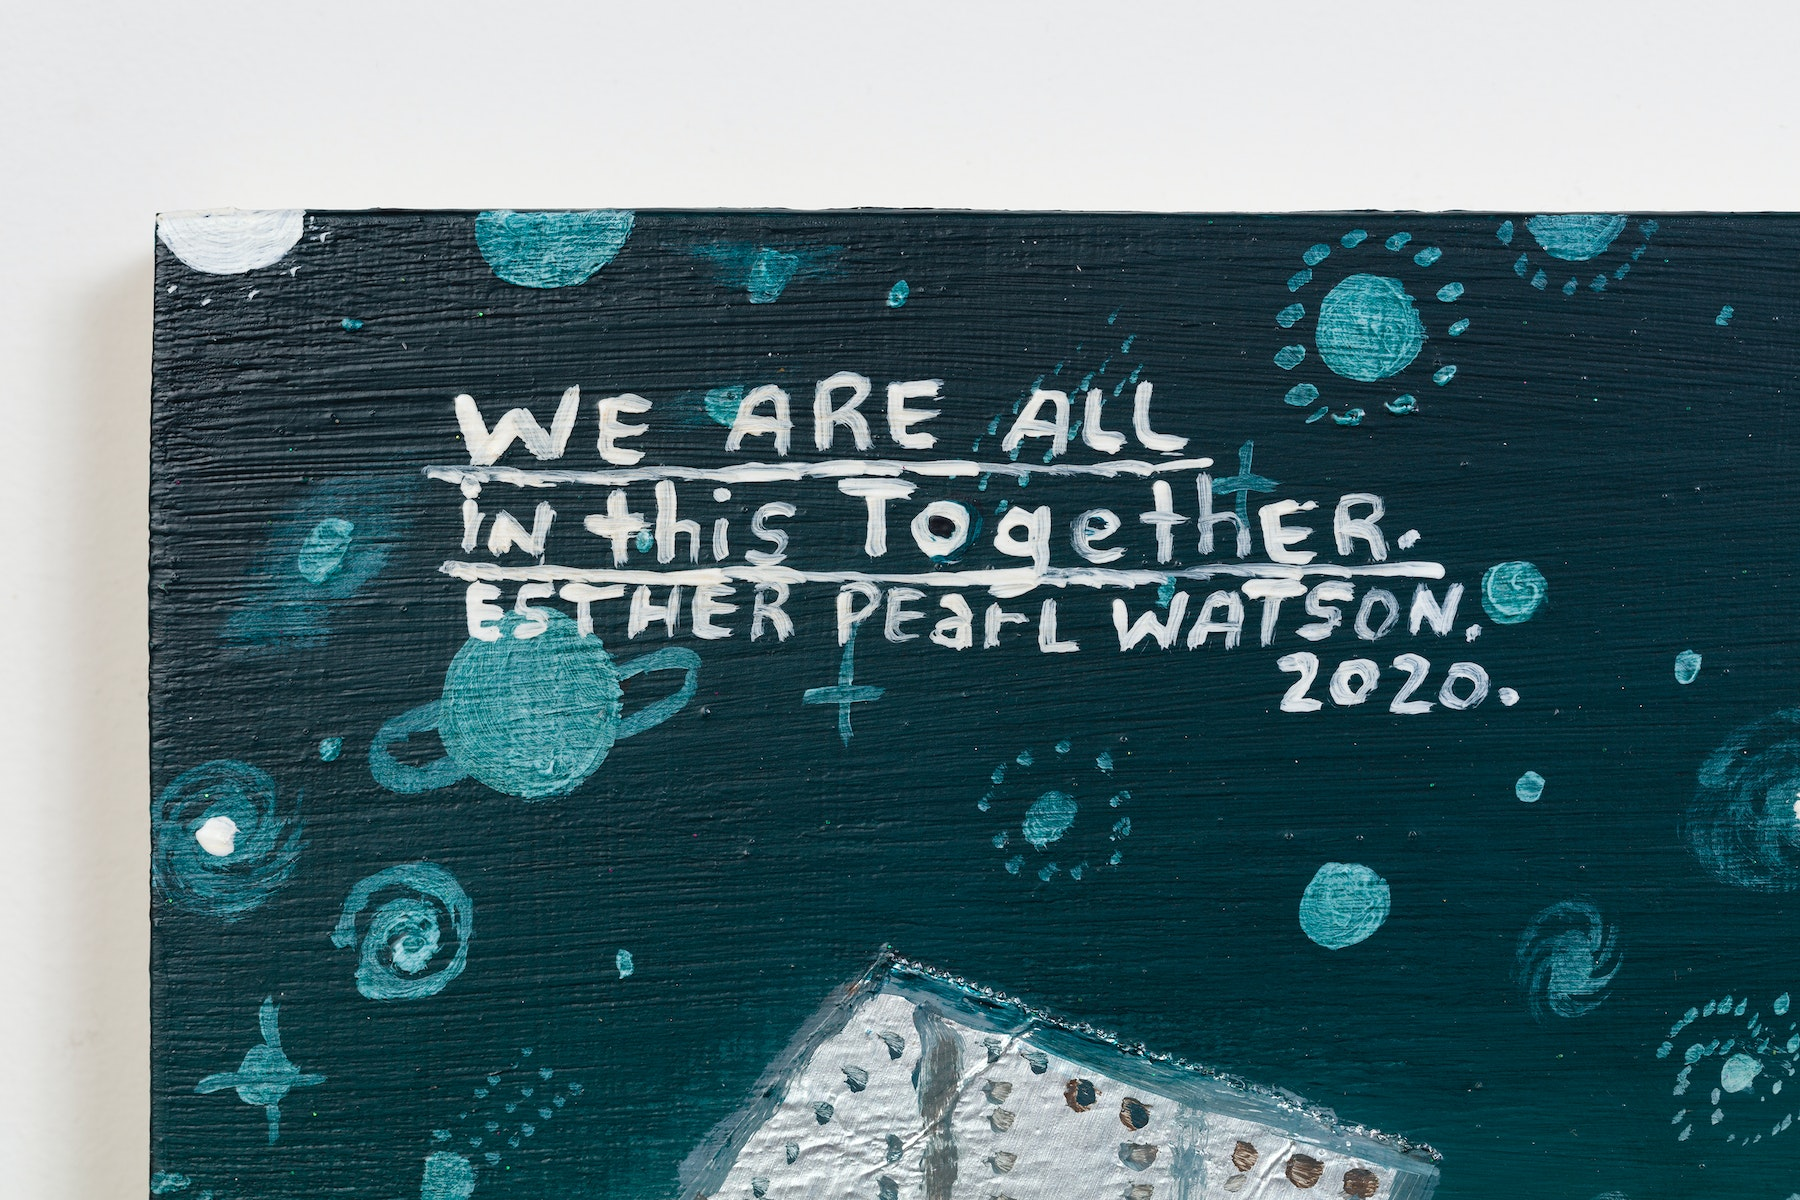 """Esther Pearl Watson """"We Are All In This Together,"""" 2020 Acrylic, foil, foil paper, found mirror, graphite on panel 12 x 16"""" [HxW] (30.48 x 40.64 cm) Inventory #EPW214 Courtesy of the artist and Vielmetter Los Angeles Photo credit: Jeff McLane"""